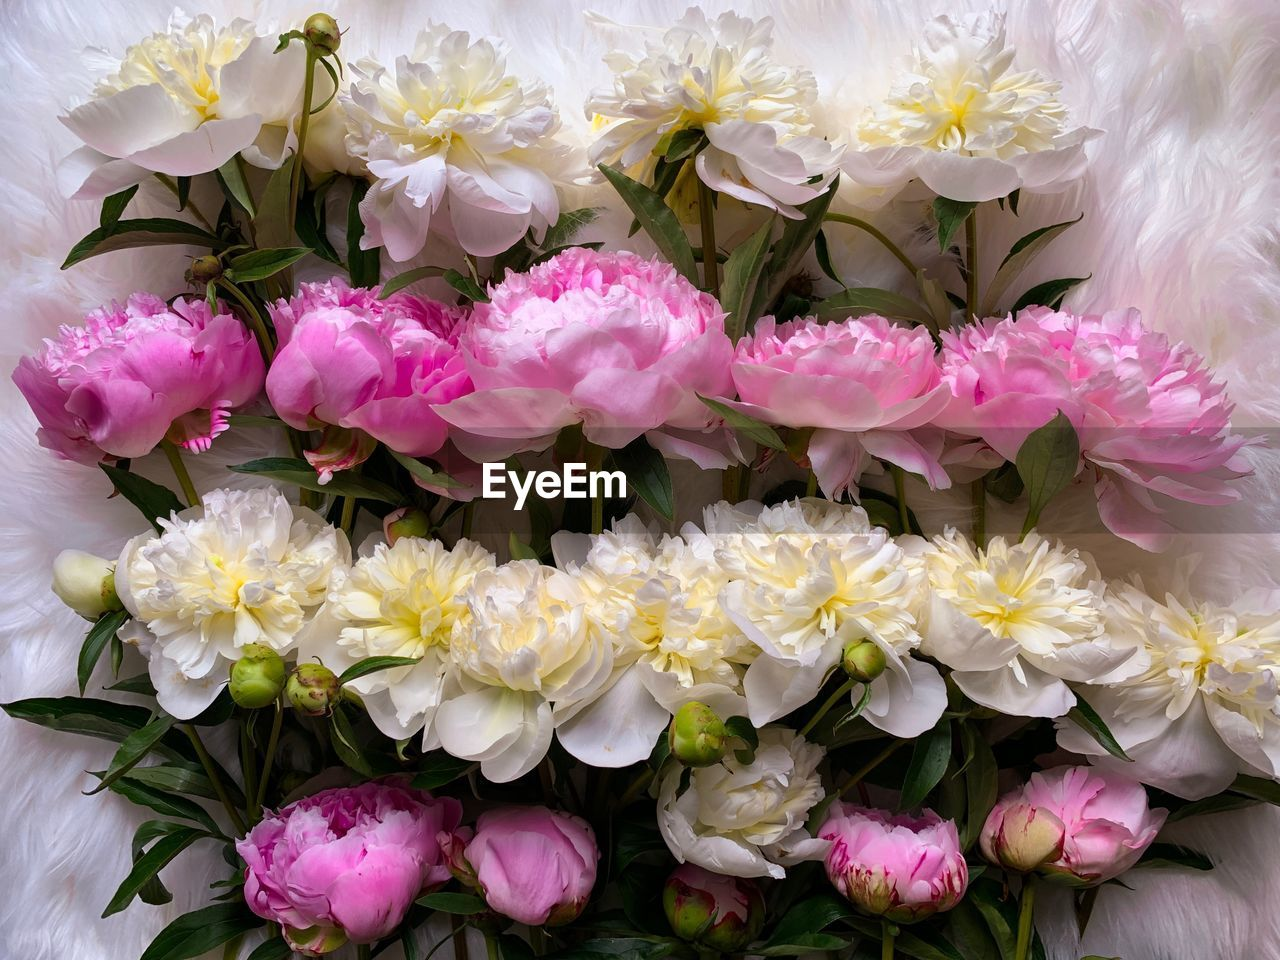 flowering plant, flower, vulnerability, freshness, plant, fragility, beauty in nature, petal, pink color, flower head, close-up, no people, inflorescence, nature, outdoors, high angle view, growth, day, bouquet, flower arrangement, bunch of flowers